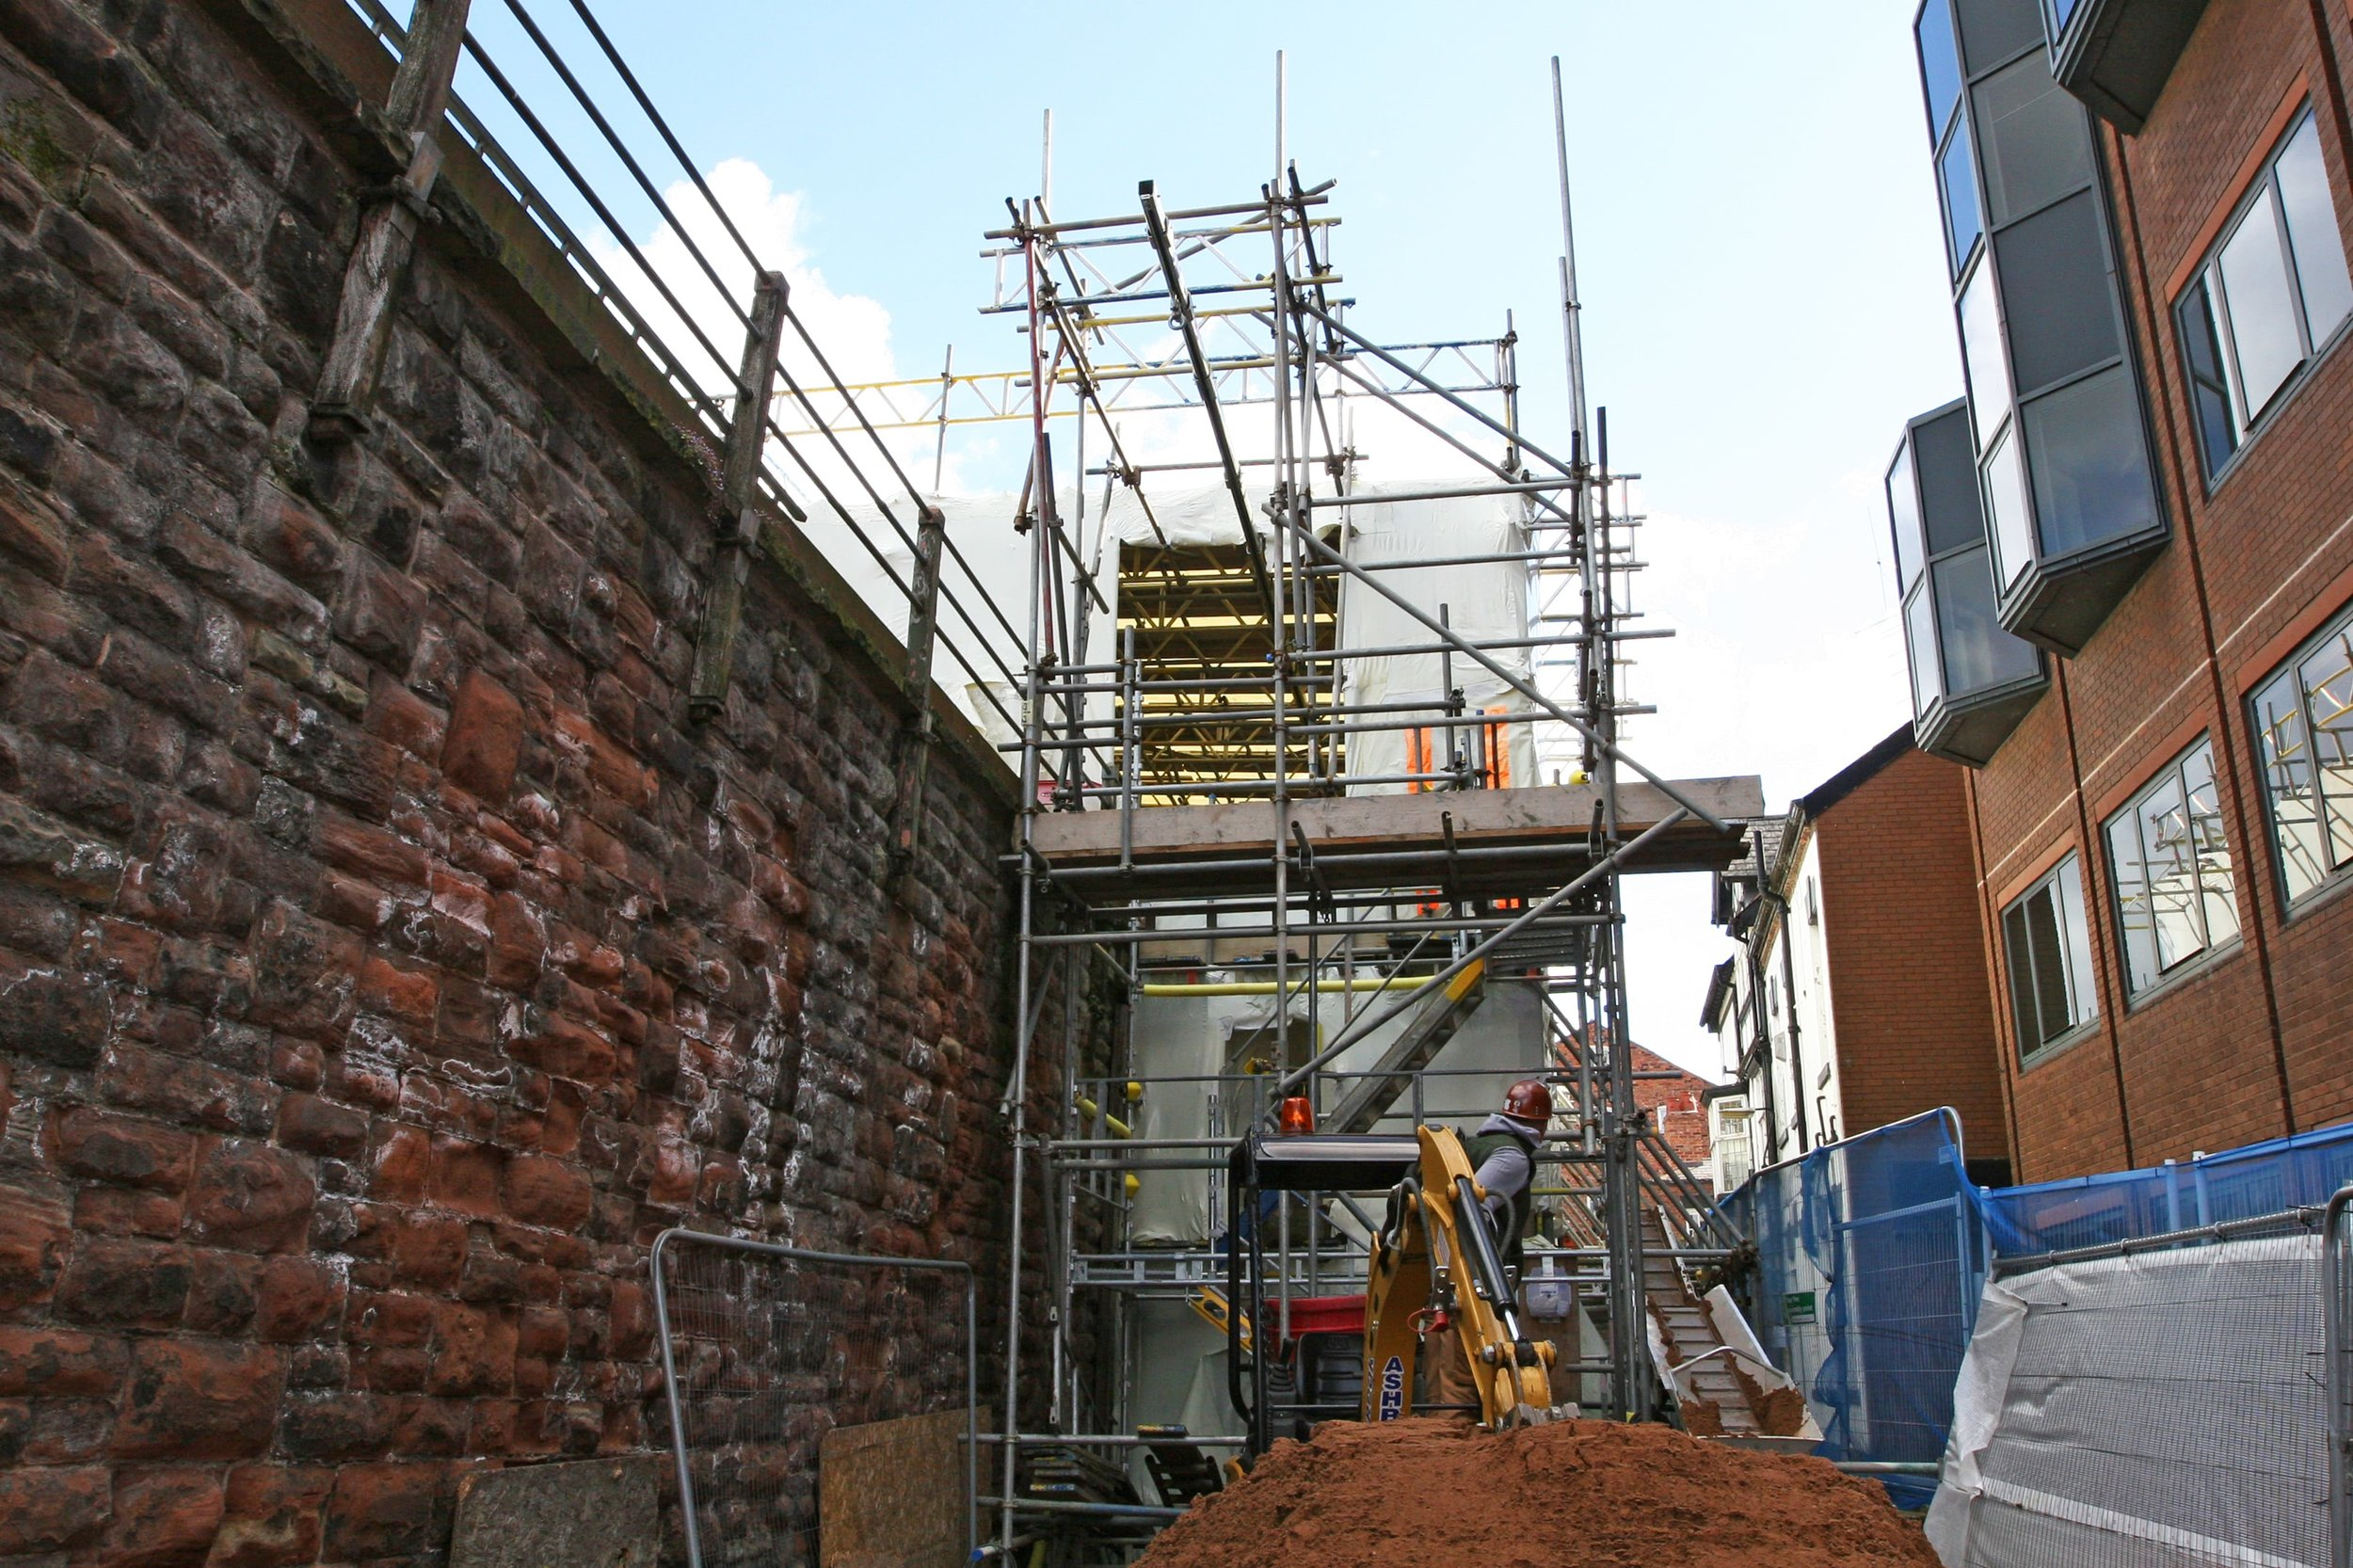 encapsulating scaffolding design for grade 1 listed structure restoration